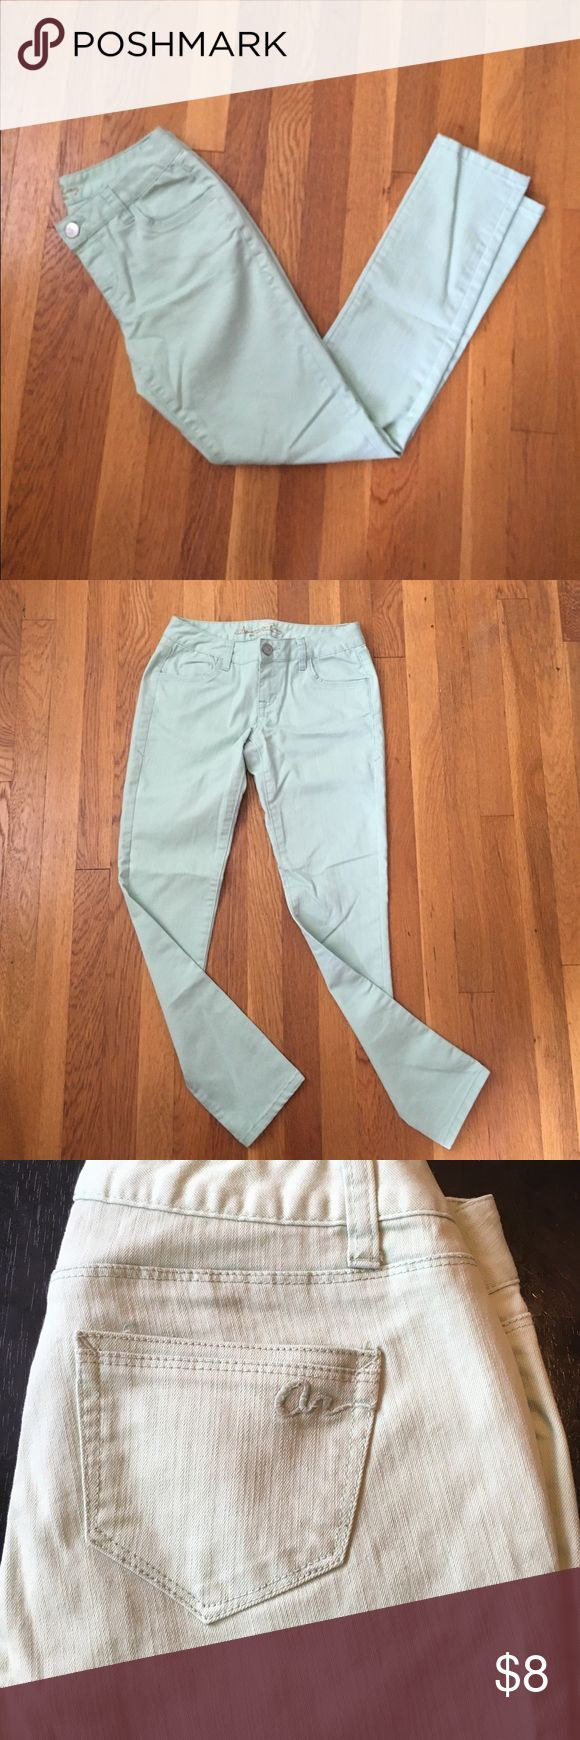 Mint green pants Mint green colored jeans. The color is deeper in real life, having trouble getting a good picture. American Rag size 3 short. Lightly used. American Rag Jeans Ankle & Cropped